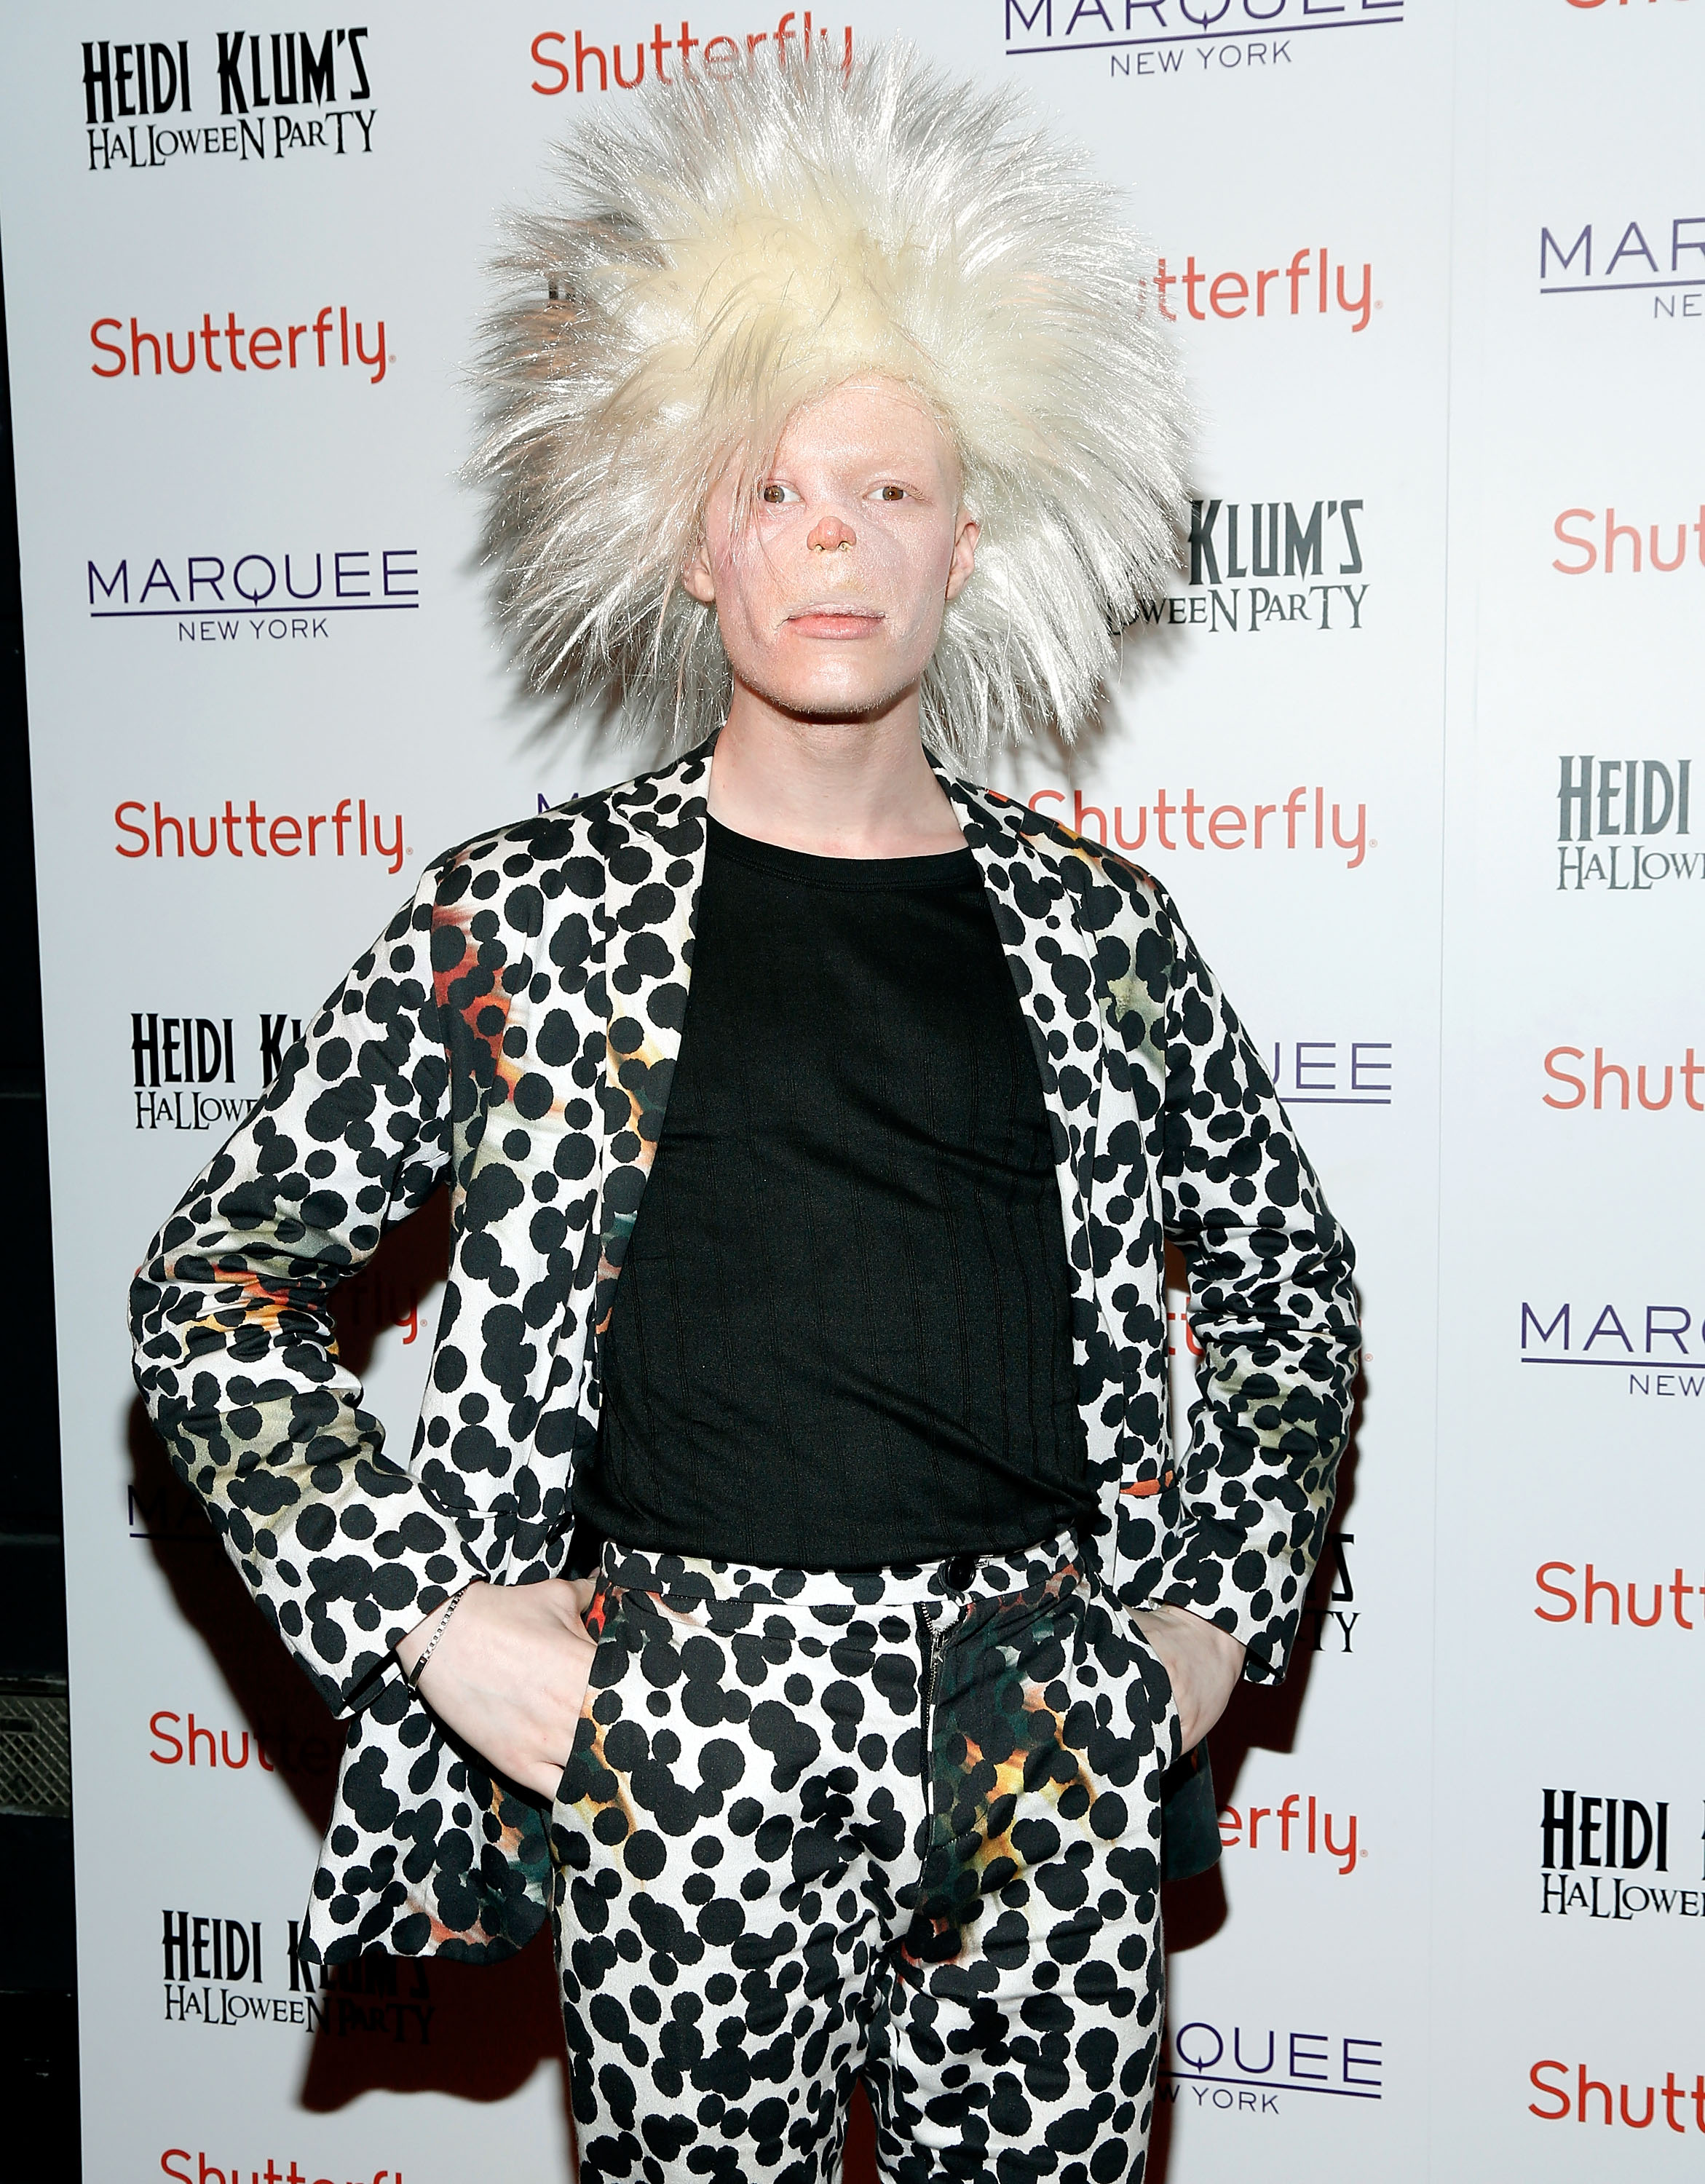 Model Shaun Ross :: Cindy Ord/Getty Images